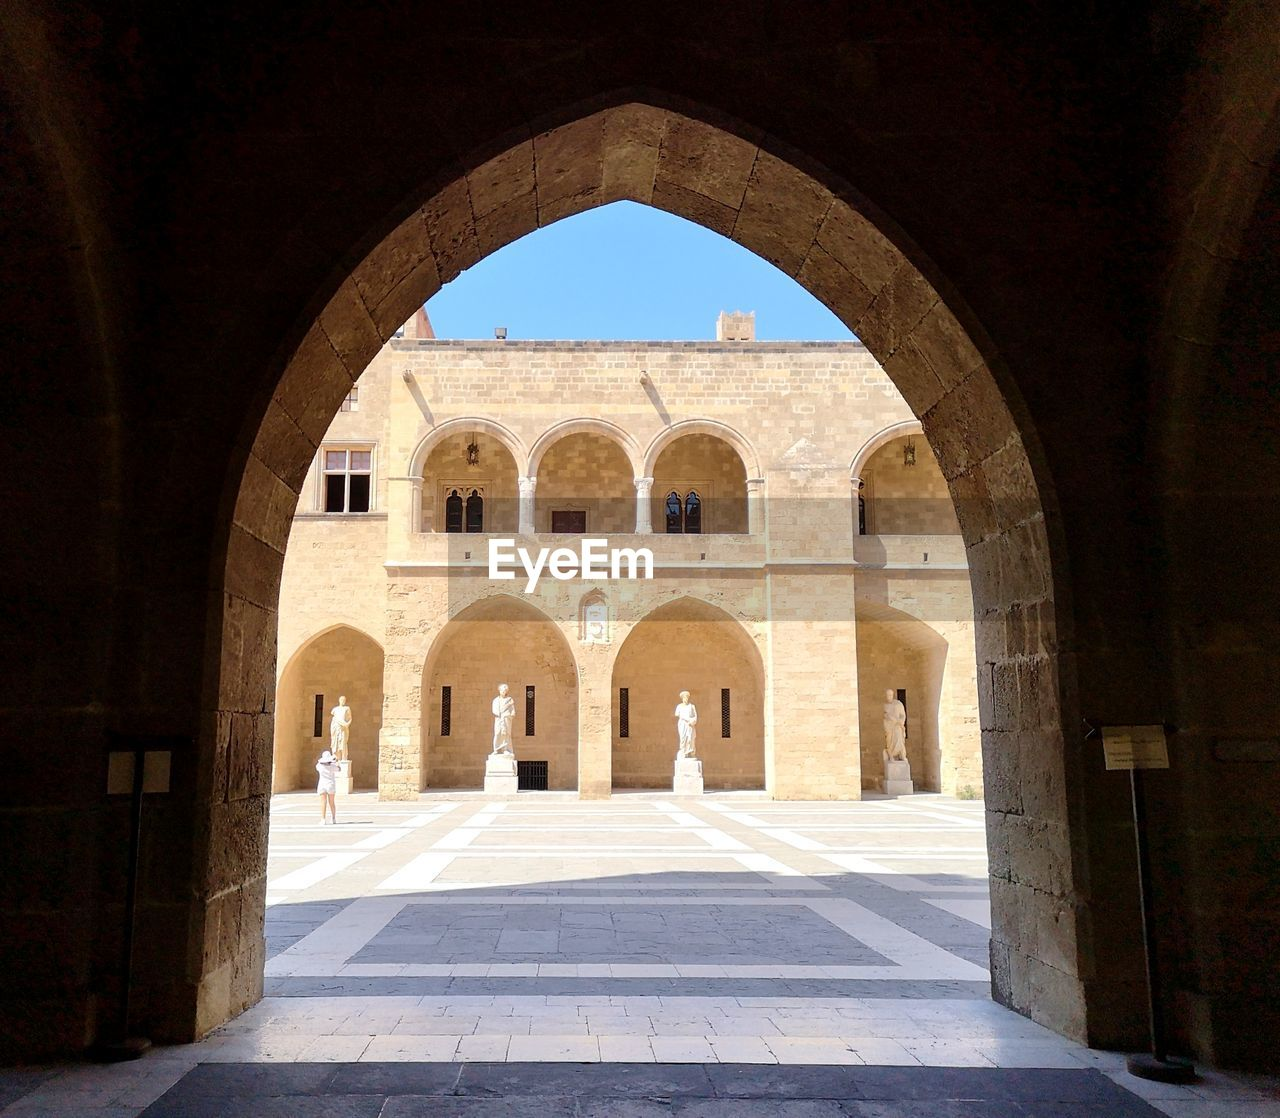 arch, architecture, built structure, history, the past, sunlight, arcade, day, building, building exterior, ancient, nature, shadow, no people, courtyard, architectural column, the way forward, travel destinations, tourism, direction, outdoors, arched, ancient civilization, building feature